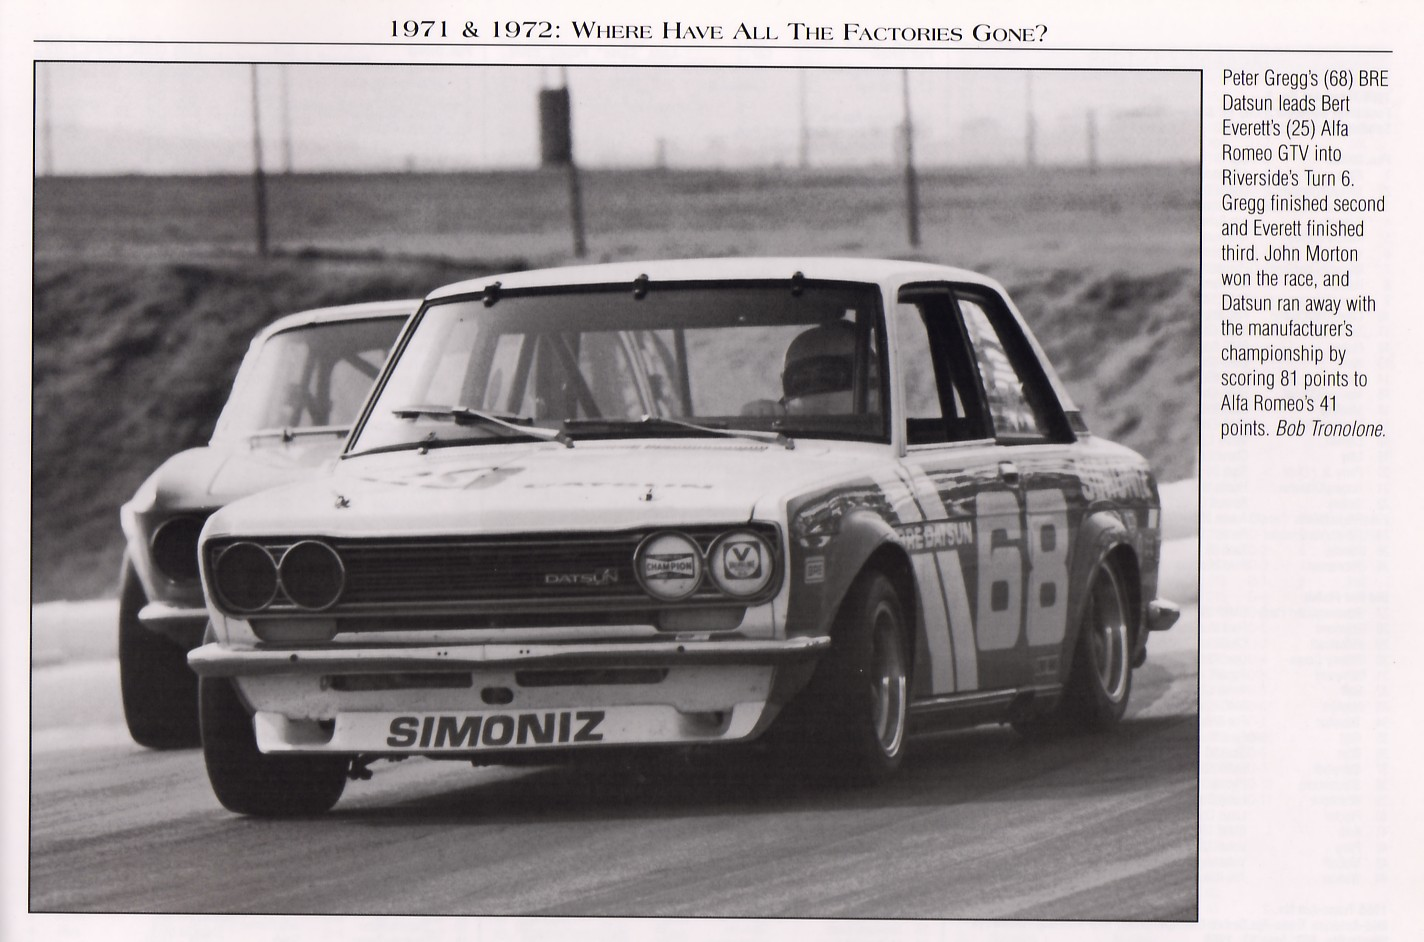 Peter Gregg, Turn 6 at Riverside